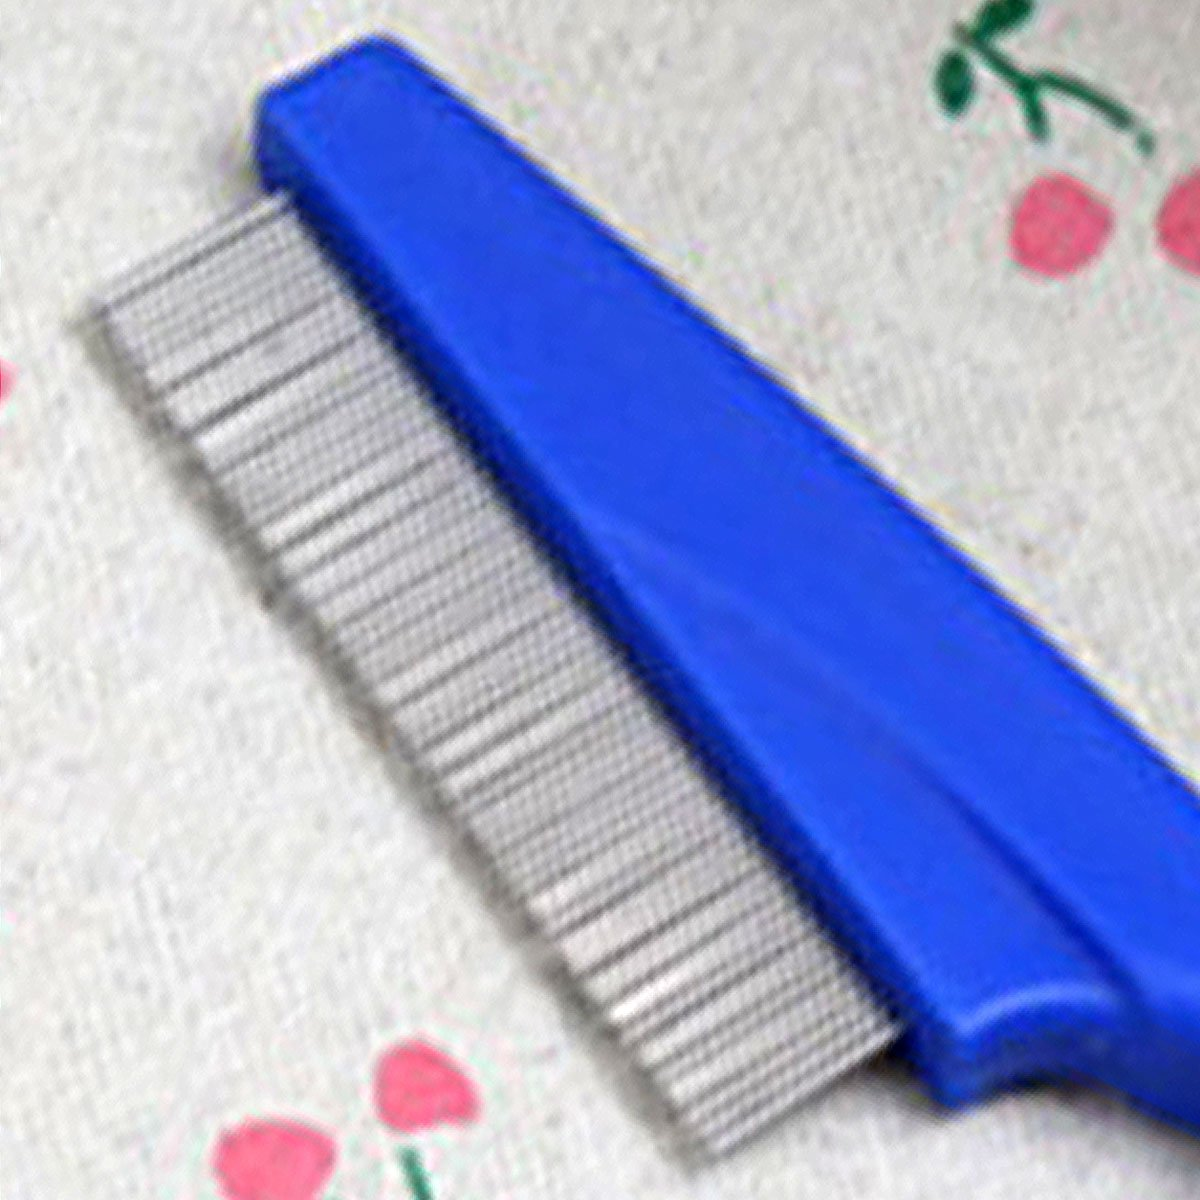 The Wolf Moon® Professional Stainless Steel Louse and Lice Removal Combs for Head Lice Treatment Pack of 2